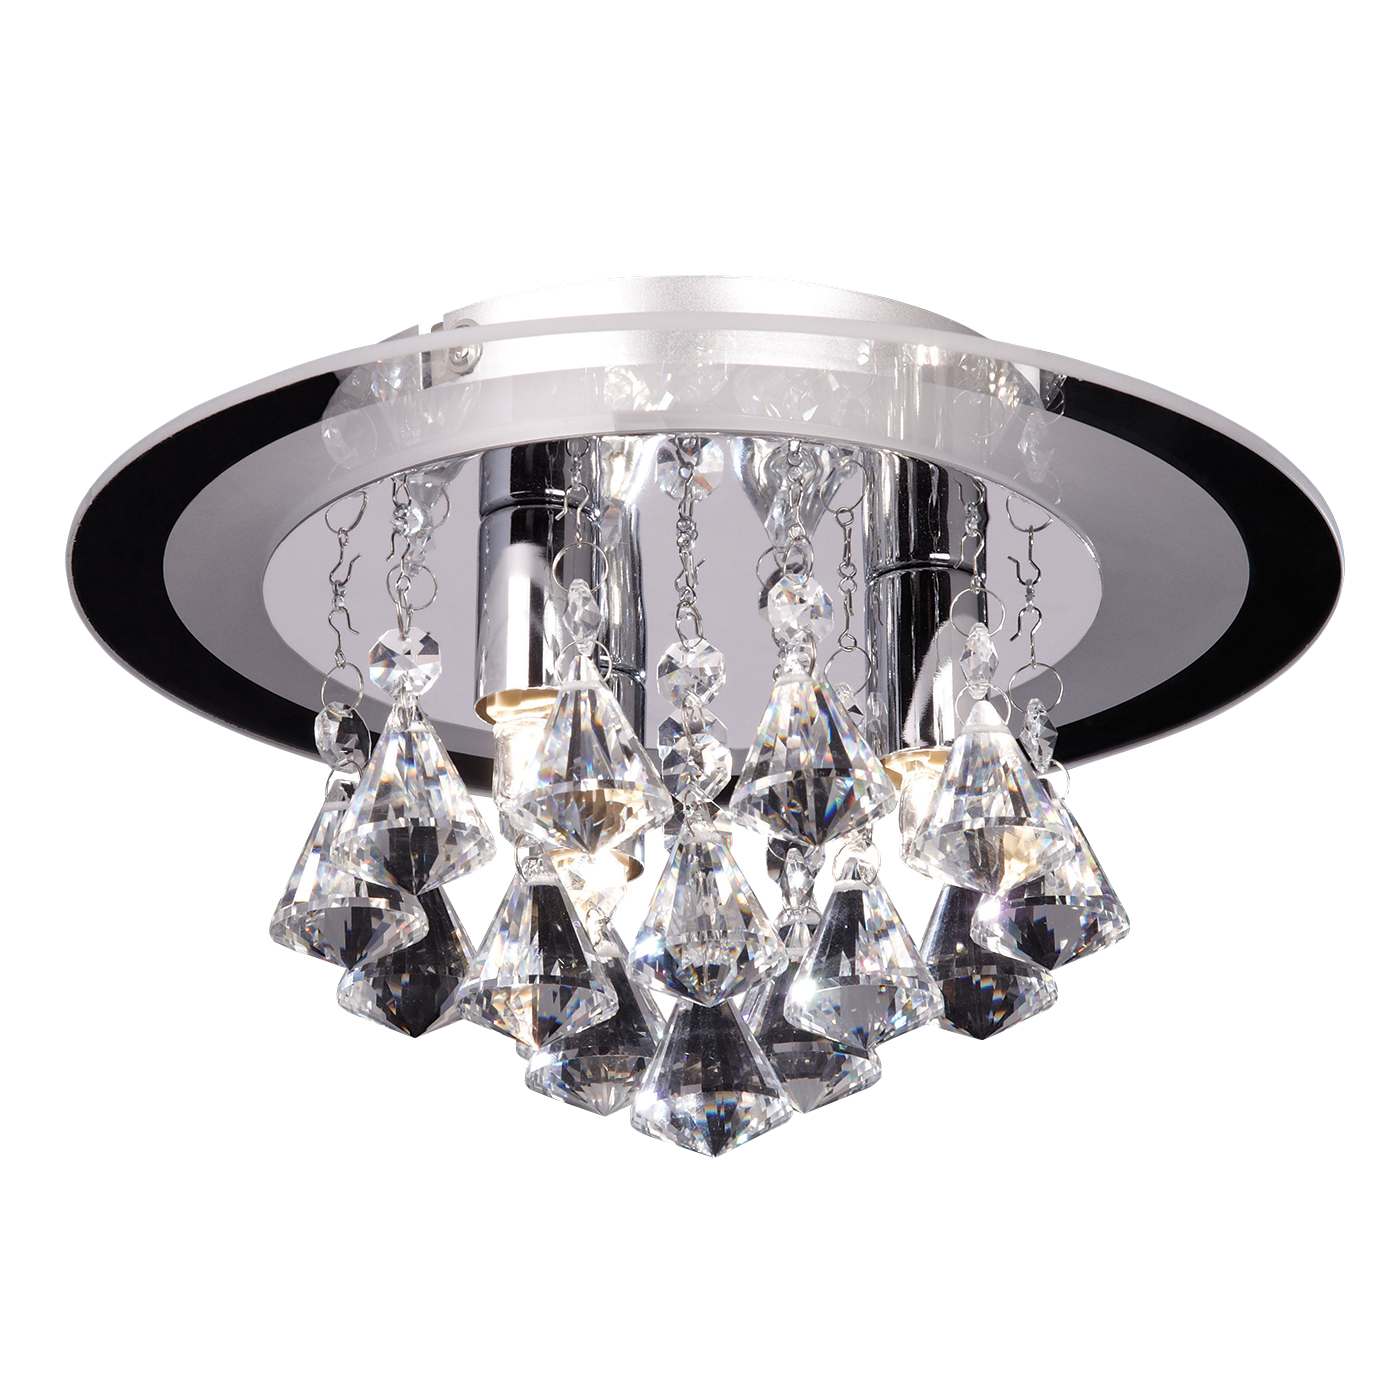 Endon Renner flush ceiling light 3x 33W Clear crystal (k9) drops & chrome effect